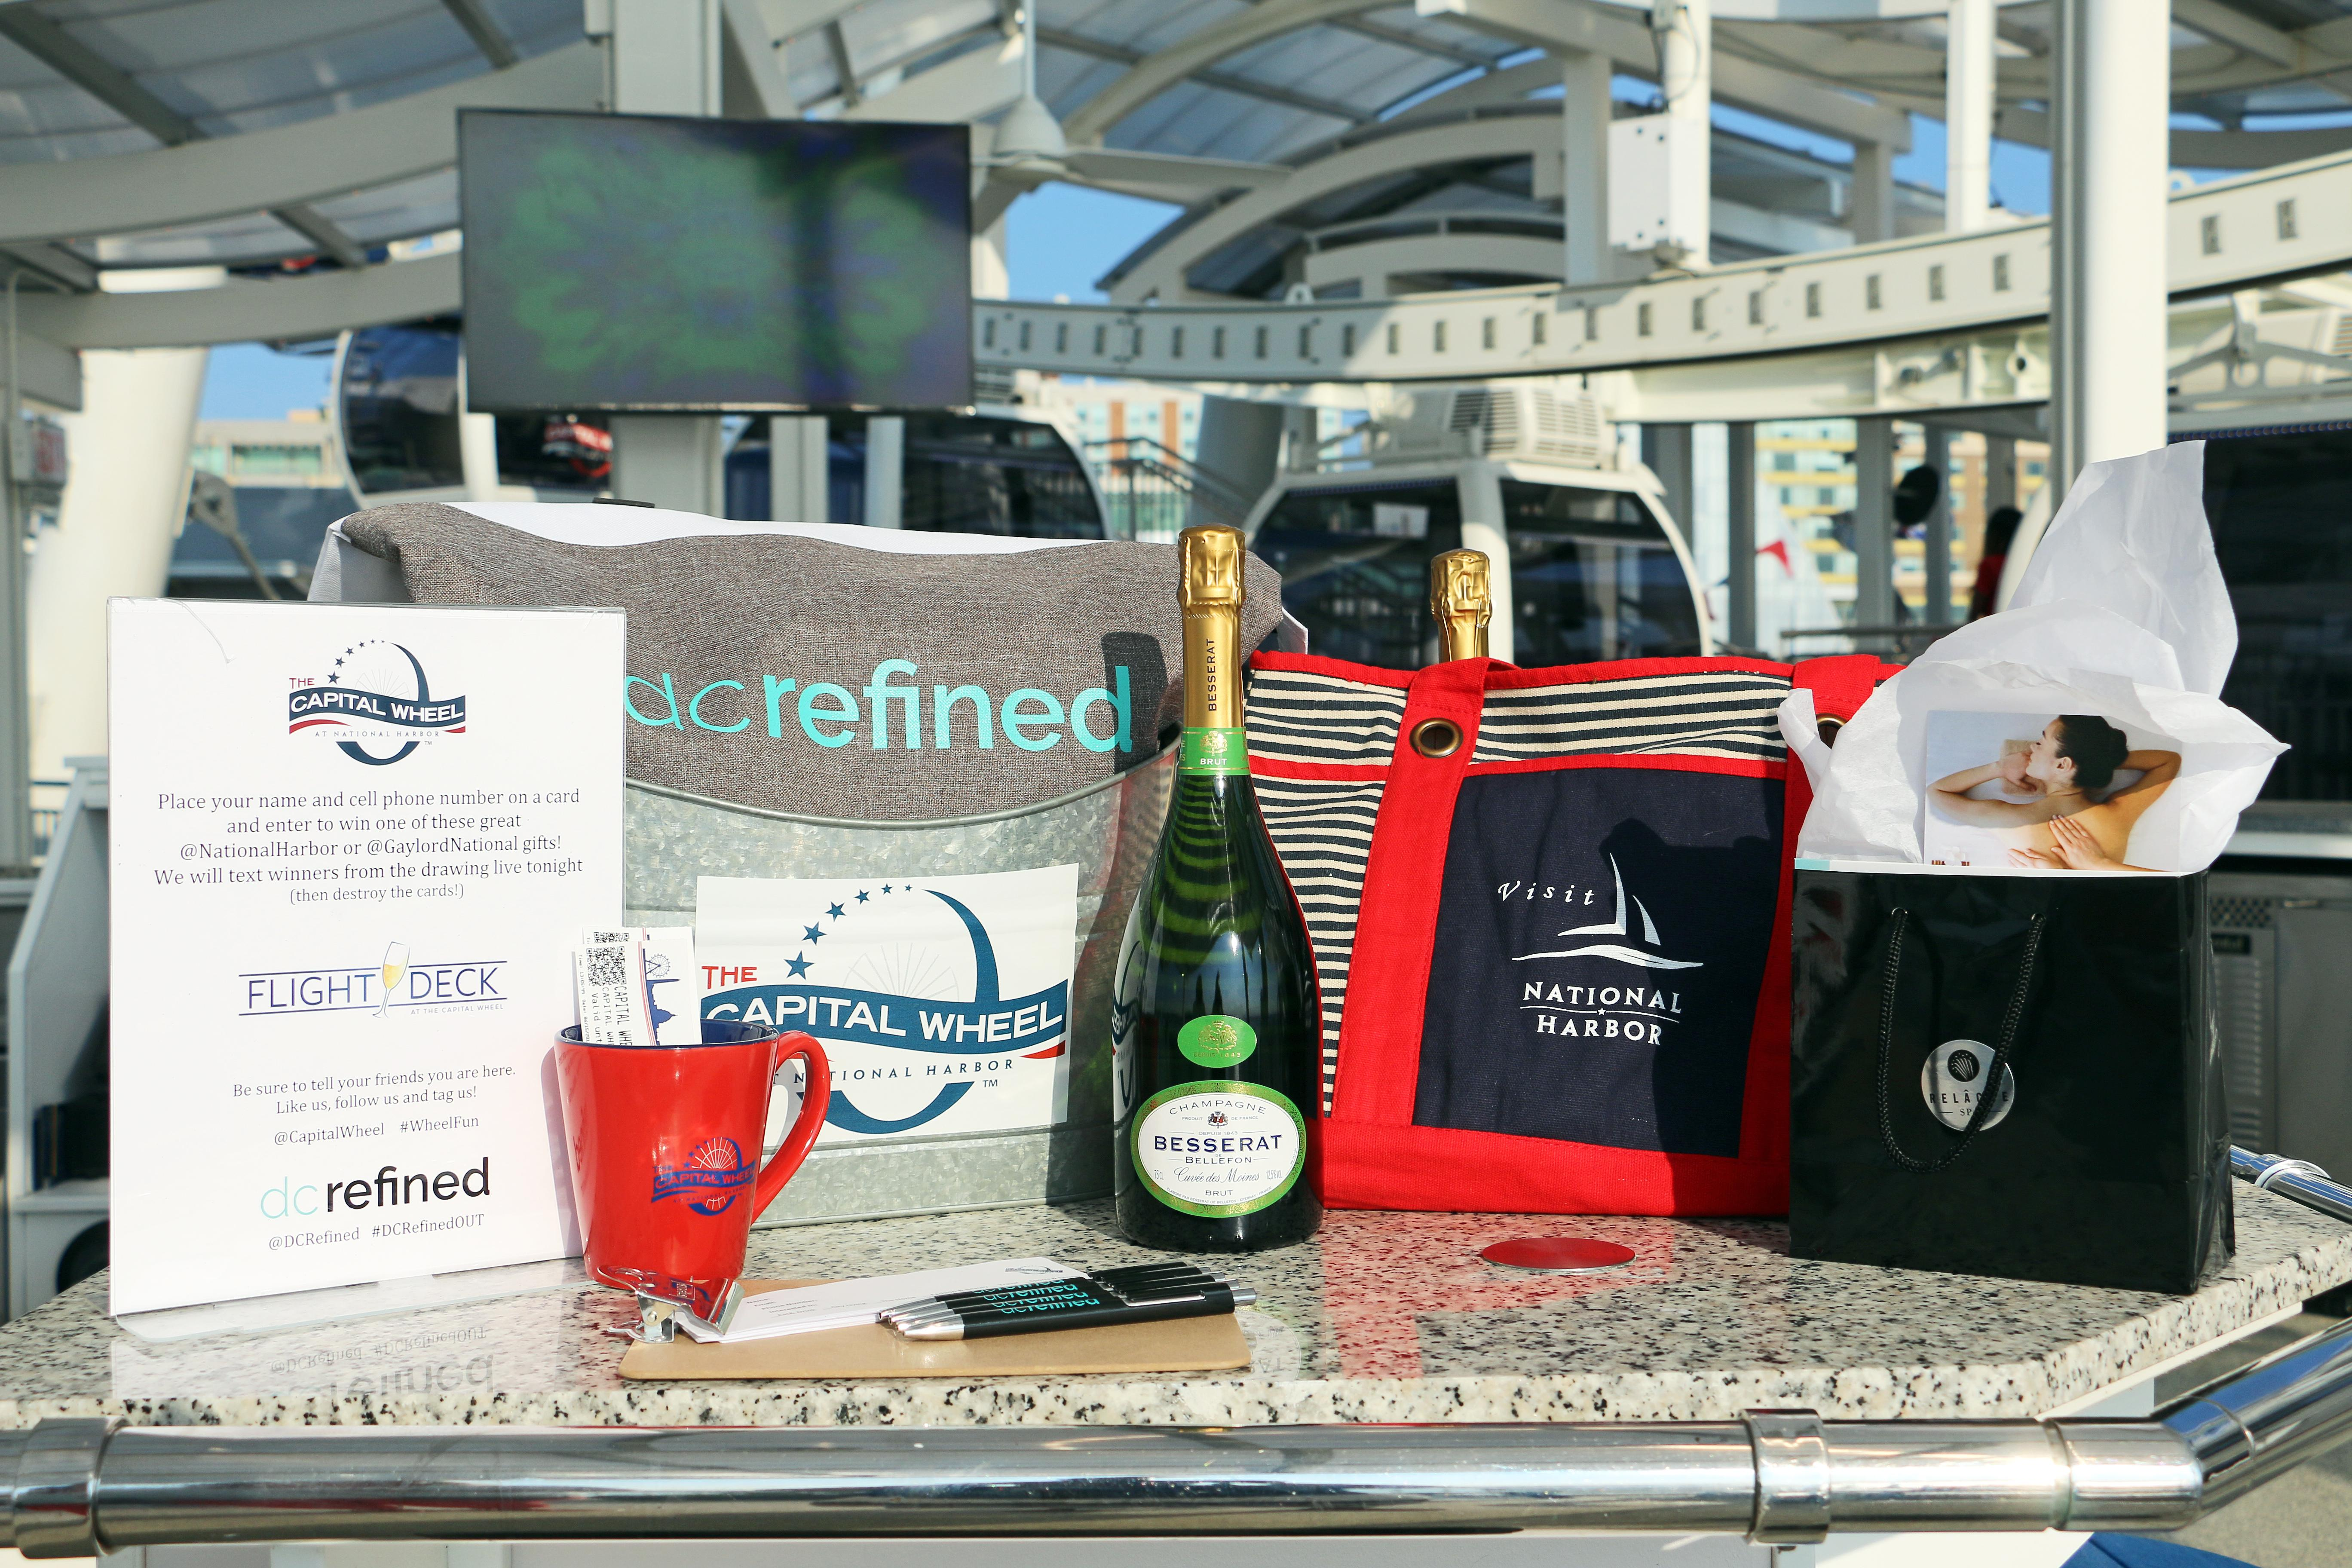 Guests could enter to win tickets to come back to the Capital Wheel, DC Refined tote bags, champagne, a spa package from the Gaylord Hotel or a goodie bag from National Harbor.